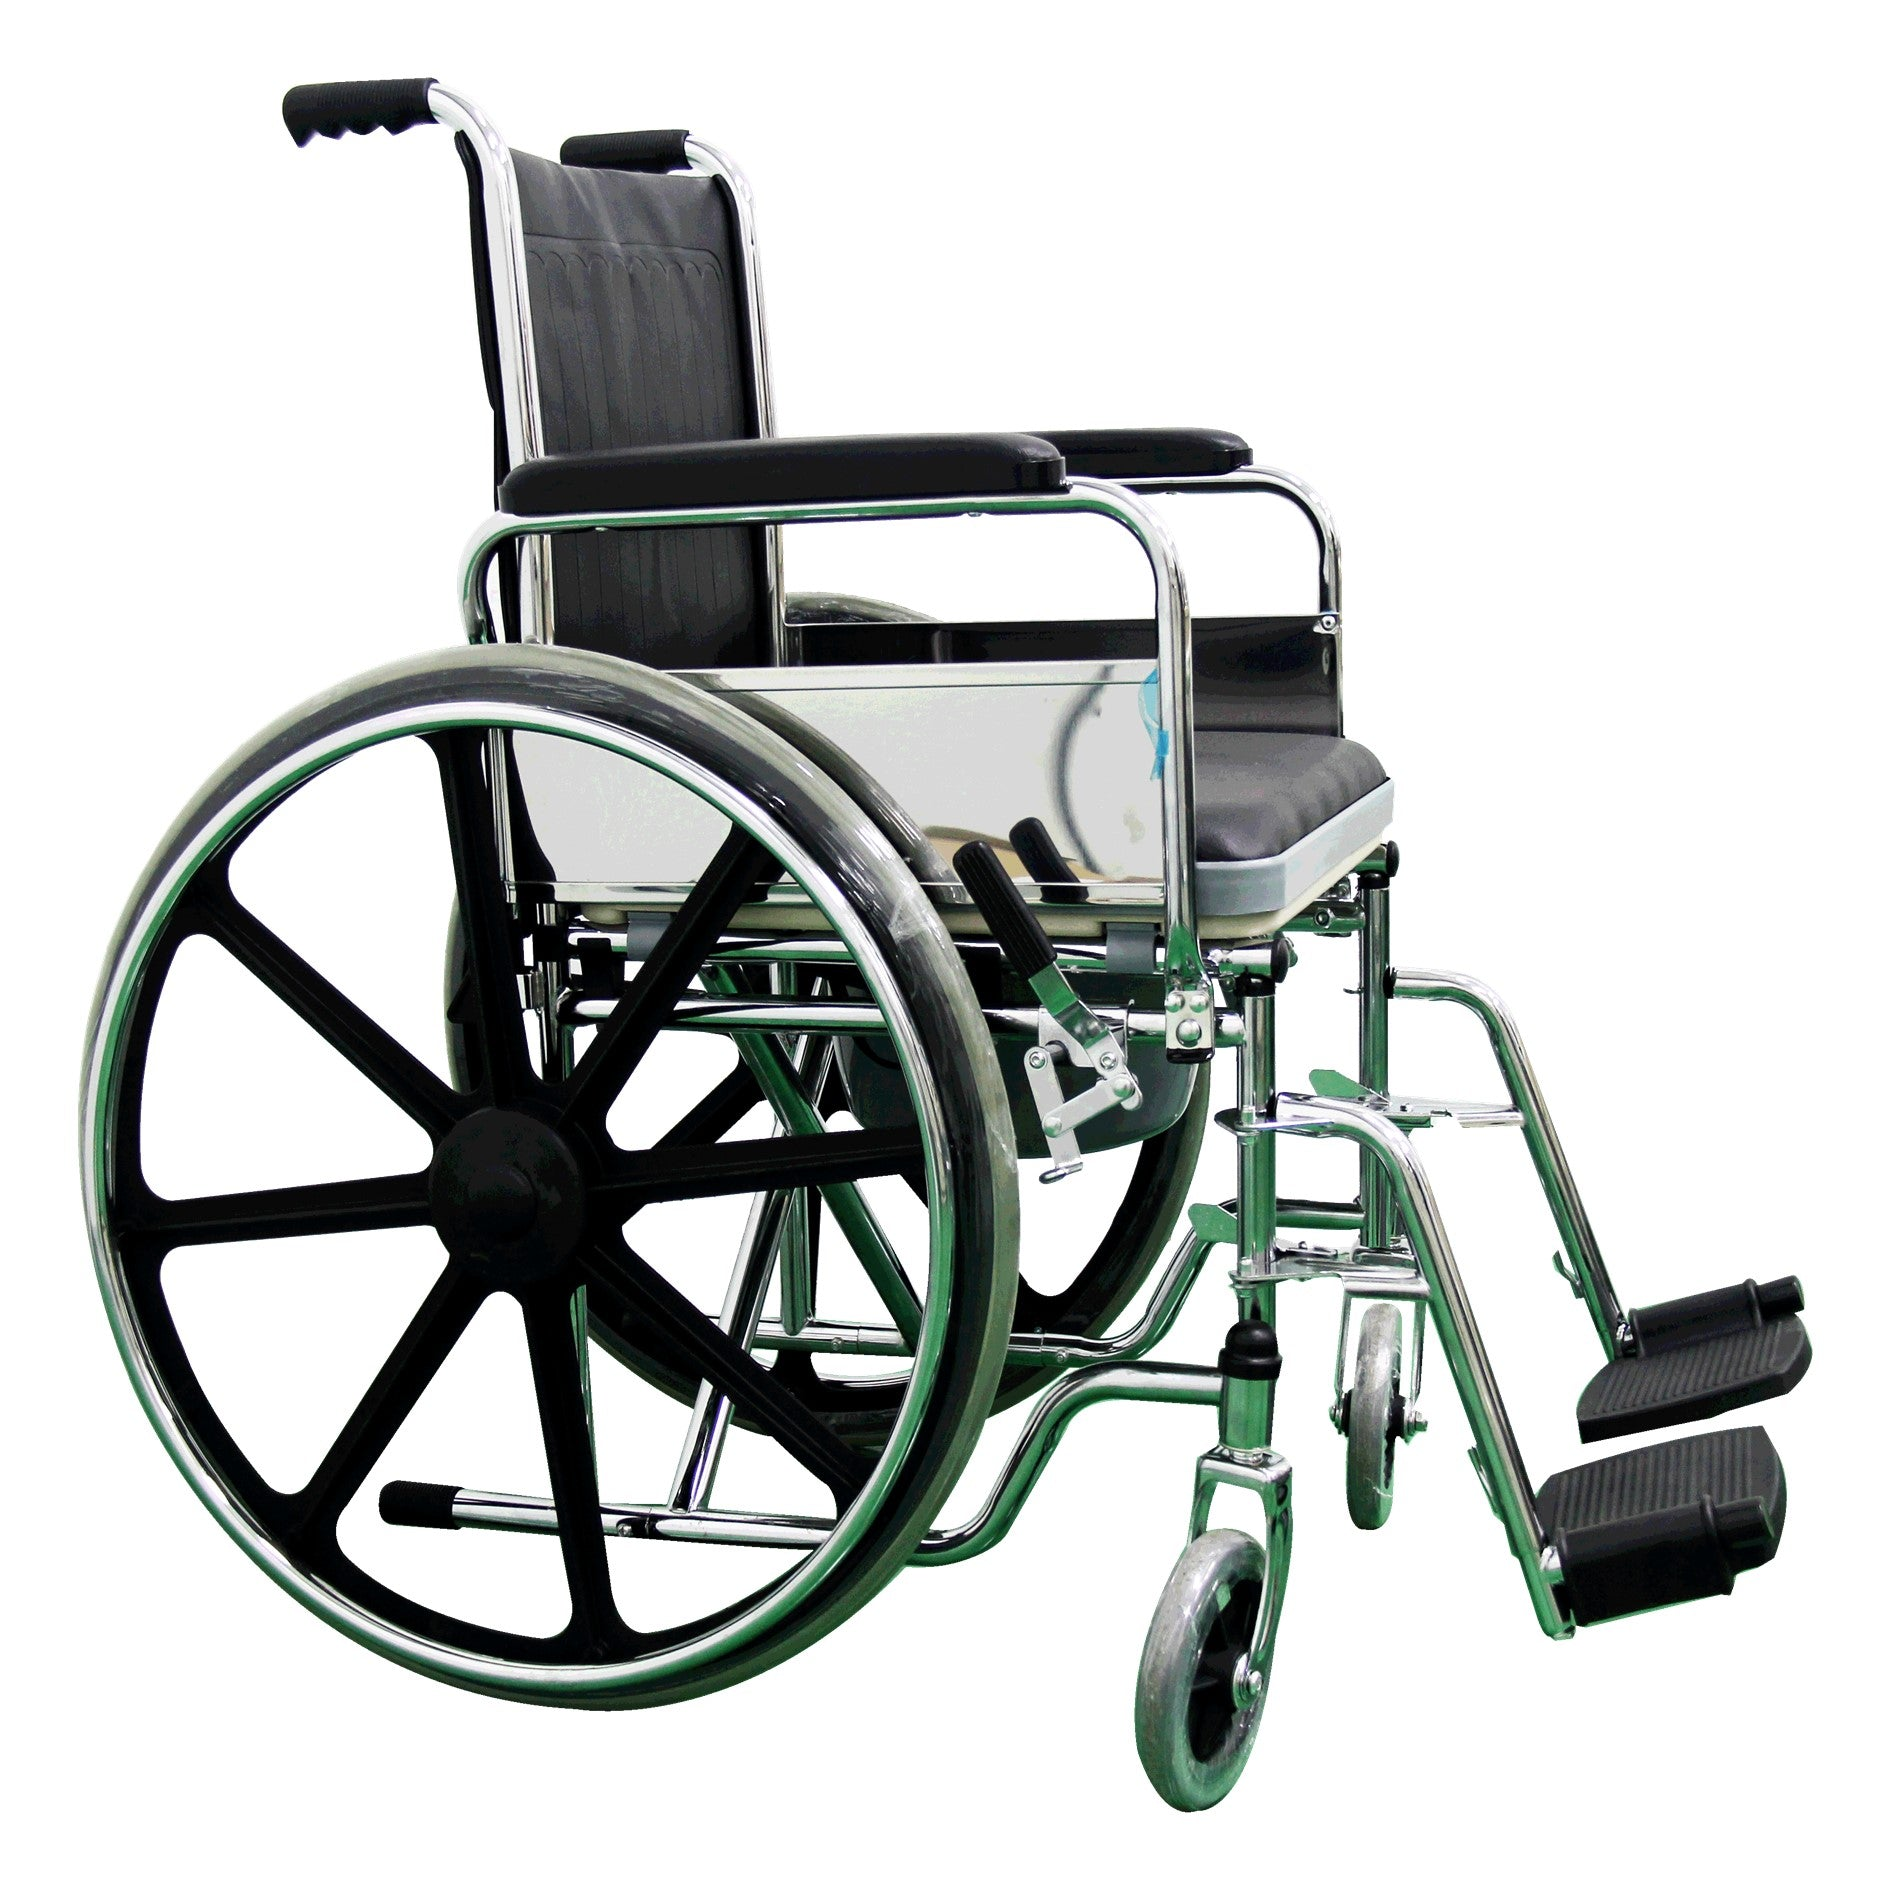 FOLDABLE COMMODE WHEELCHAIR 2 IN 1 18